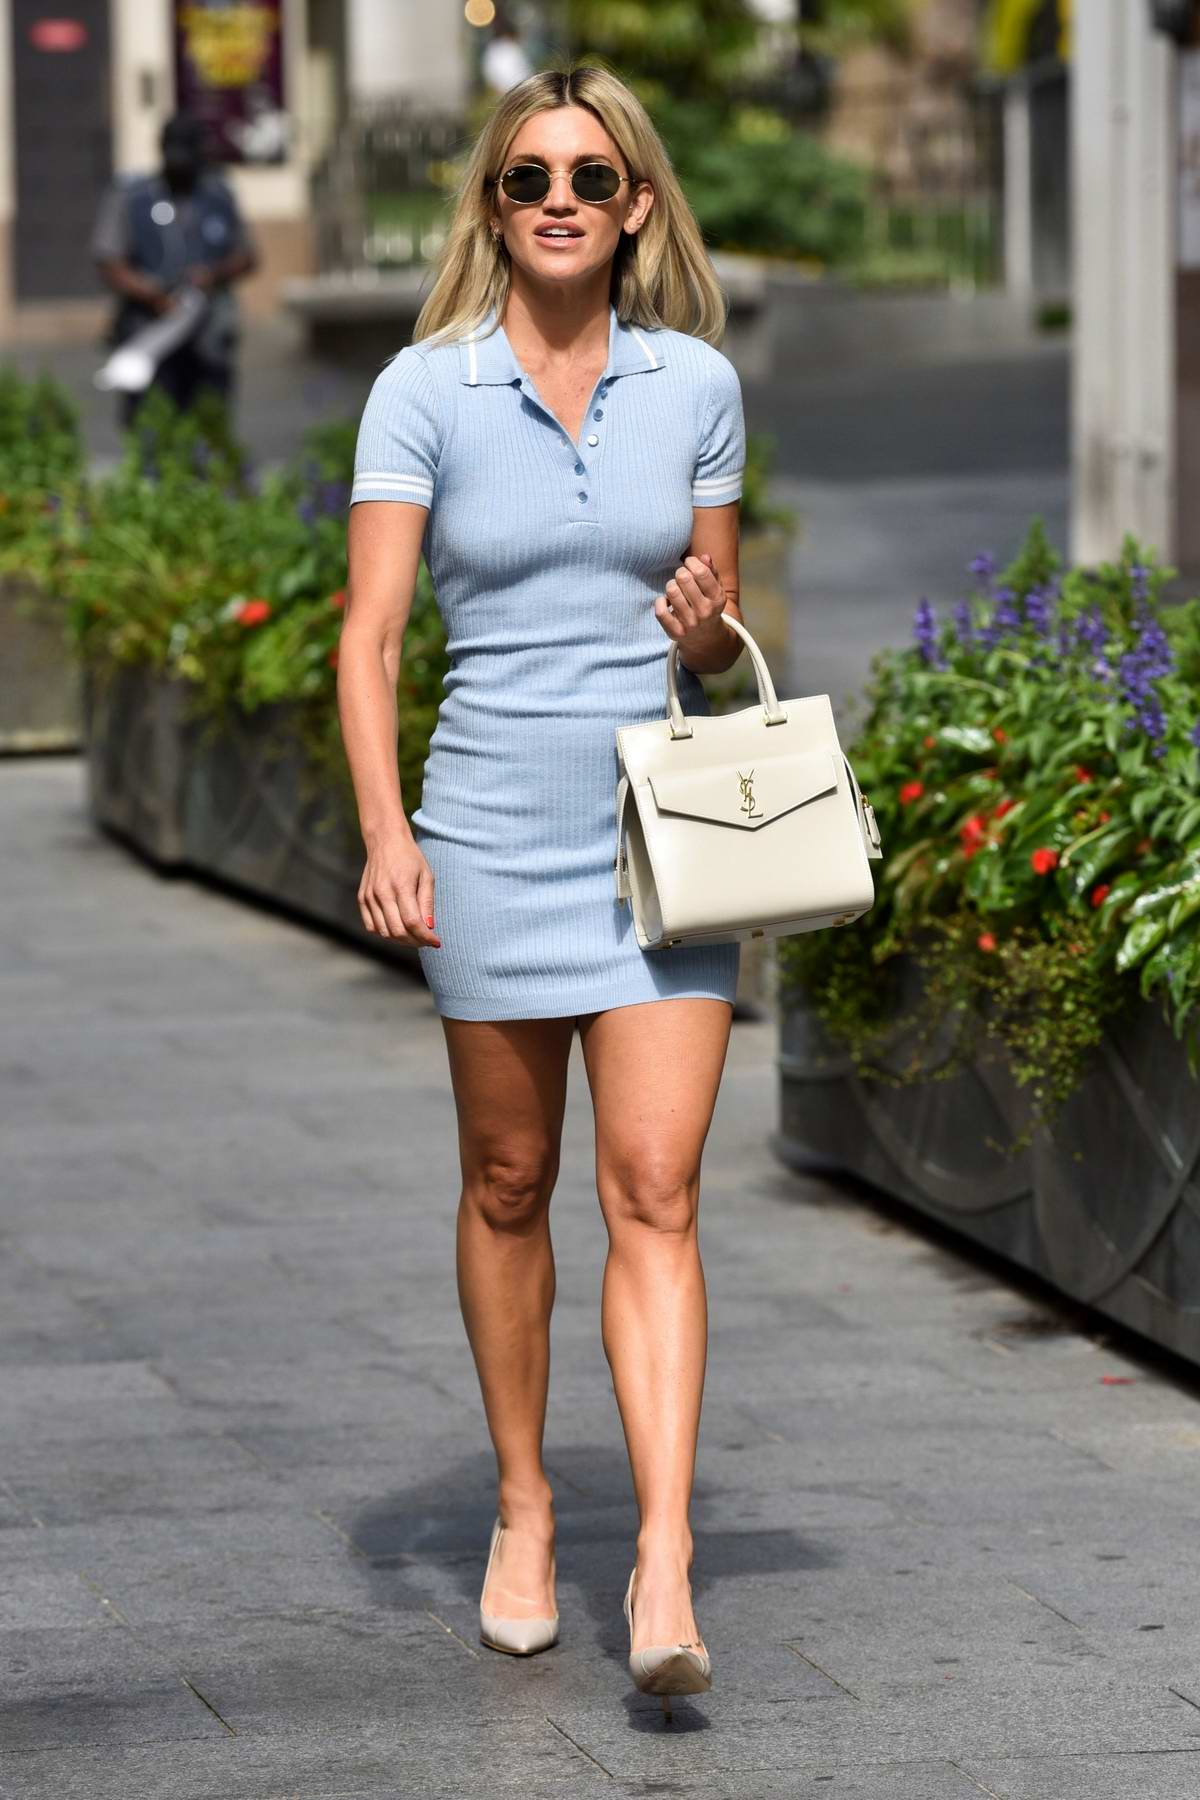 Ashley Roberts shows off her toned legs in a baby blue mini dress as she leaves Heart radio in London, UK